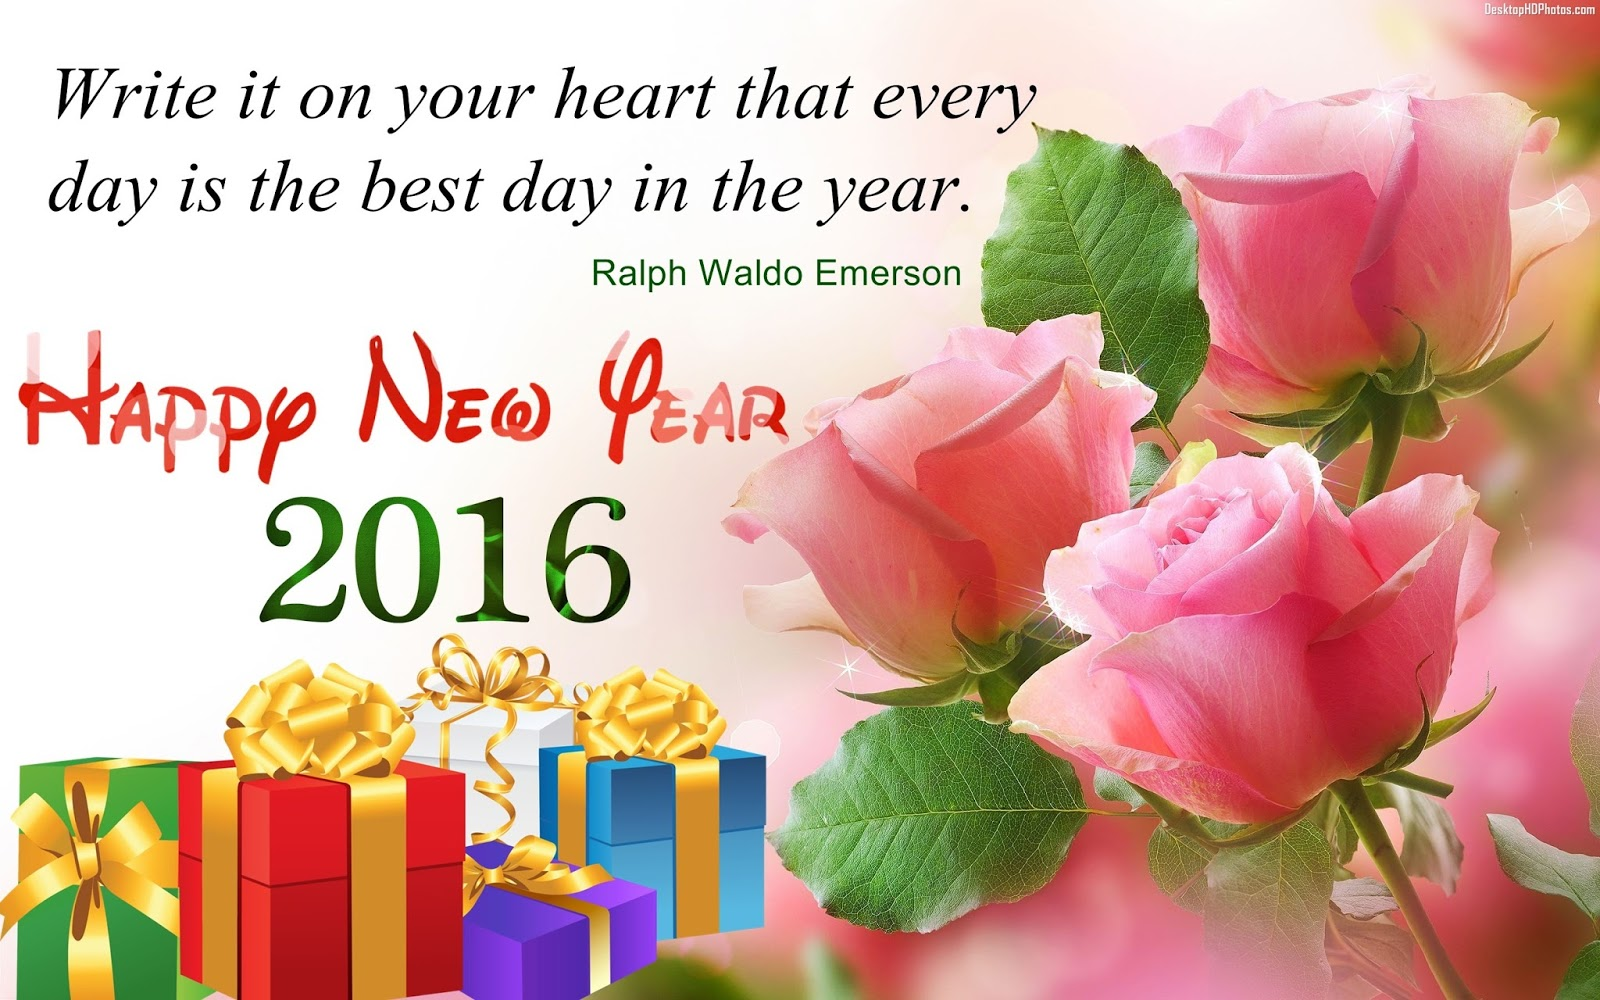 New year greeting quotes 2016 pictures hdrwalls new year greeting quotes 2016 pictures m4hsunfo